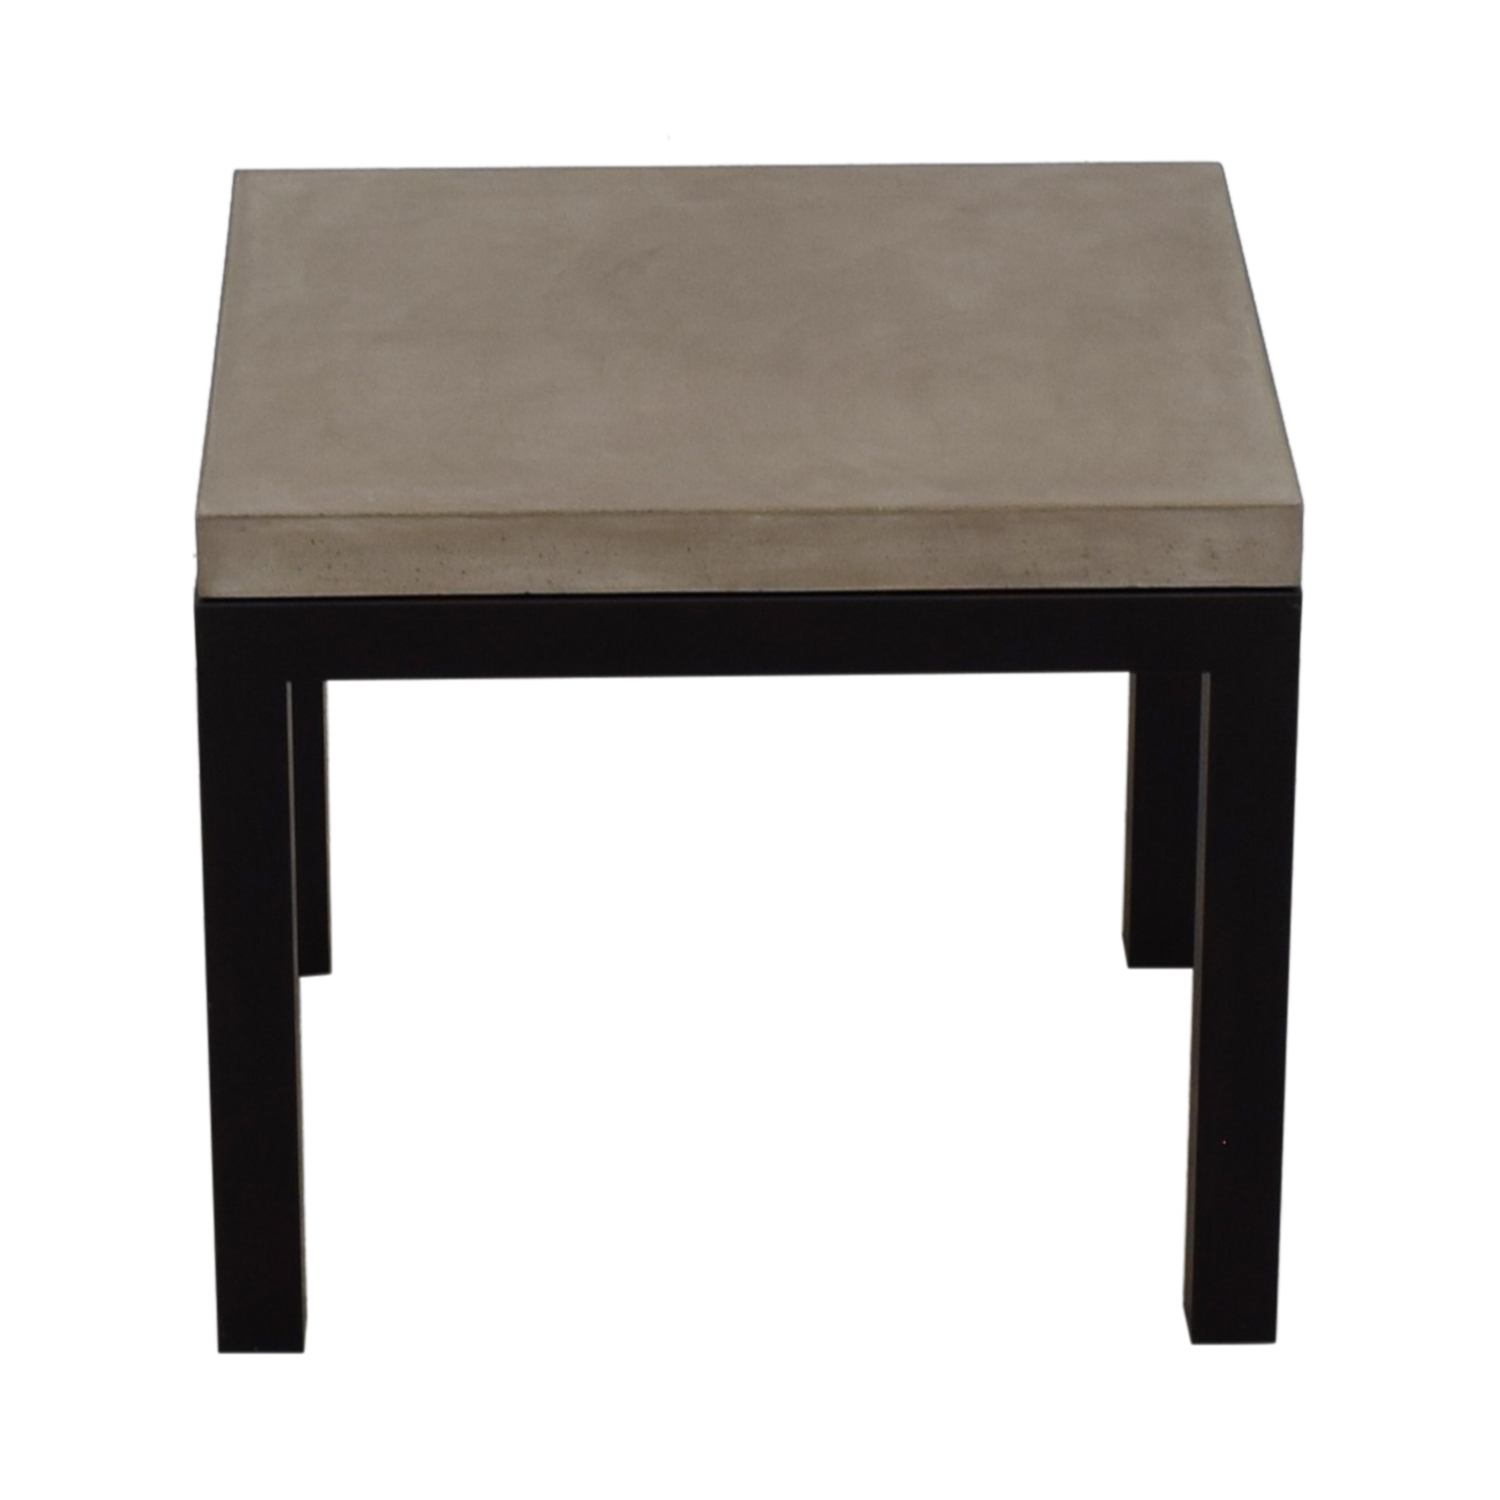 Crate & Barrel Crate & Barrel Parsons Concrete Top Dark Steel Base End Table for sale